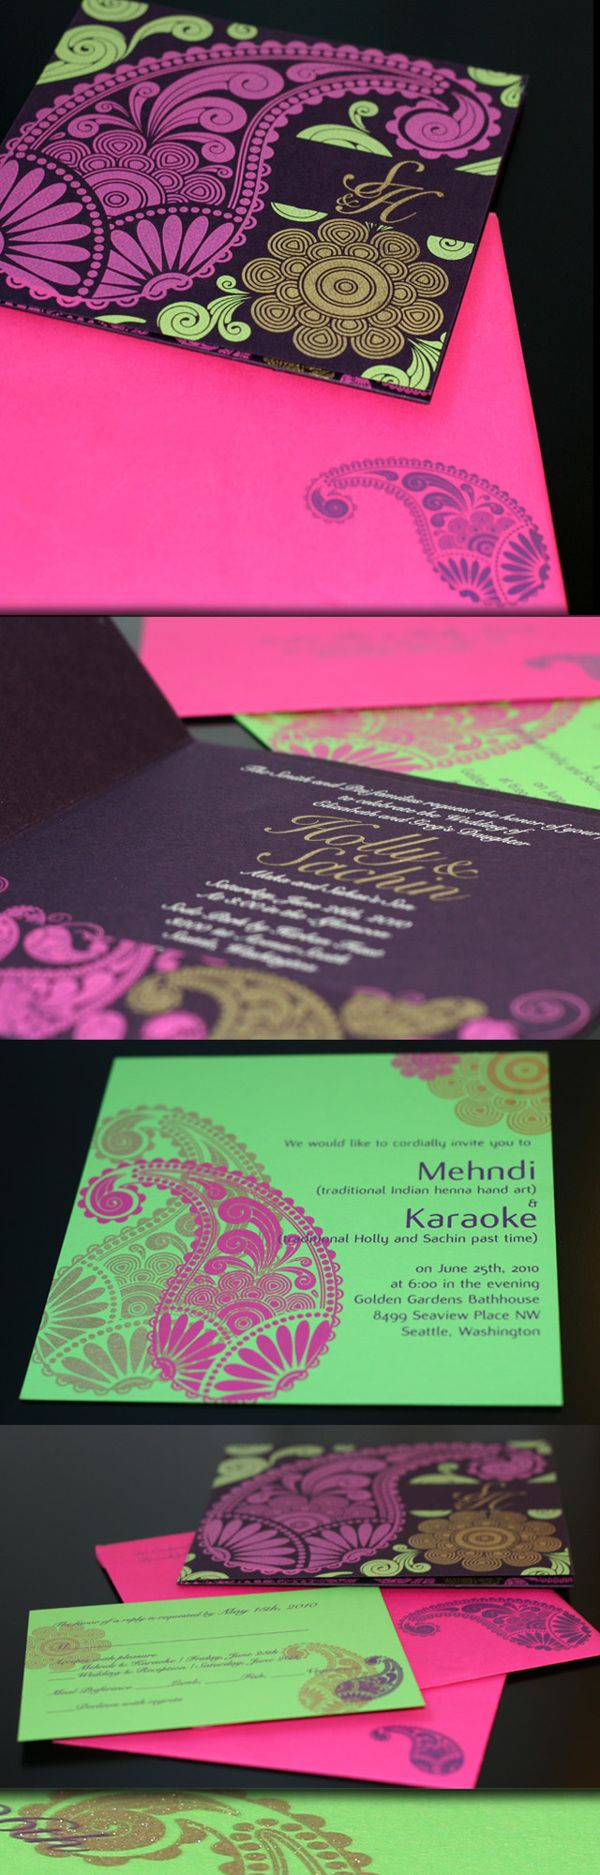 Neon Indian wedding invitations with paisleys | Indian wedding card by Pradnya Phadke, via Behance